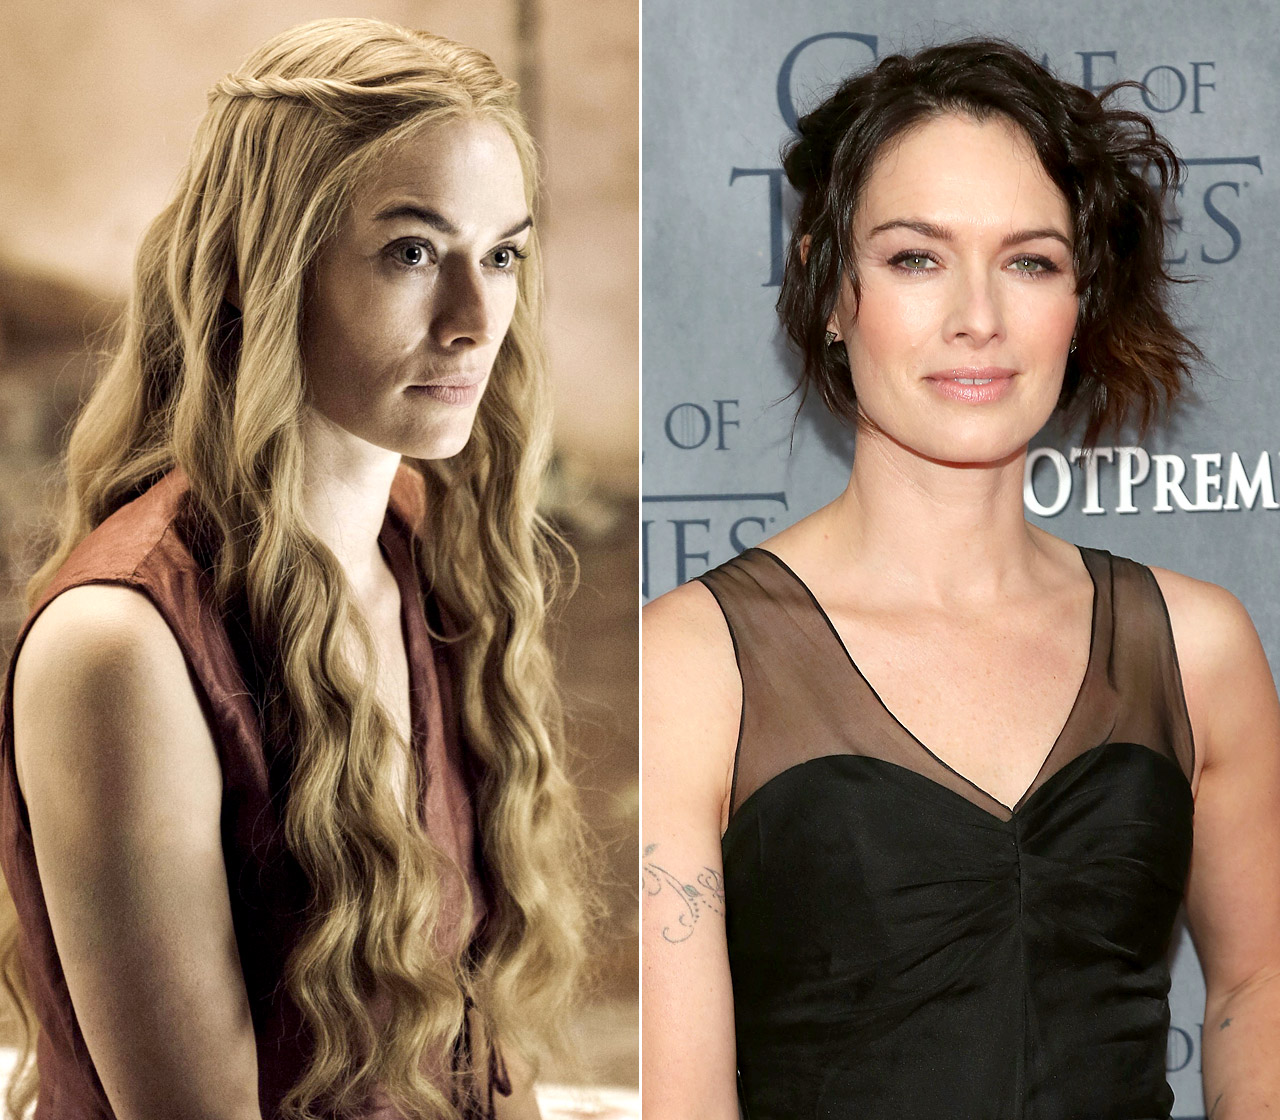 As Cersei Lannister, the ruthless queen who is in love with her twin brother, Headey is at once terrifying and terrifyingly relatable. She's that good.